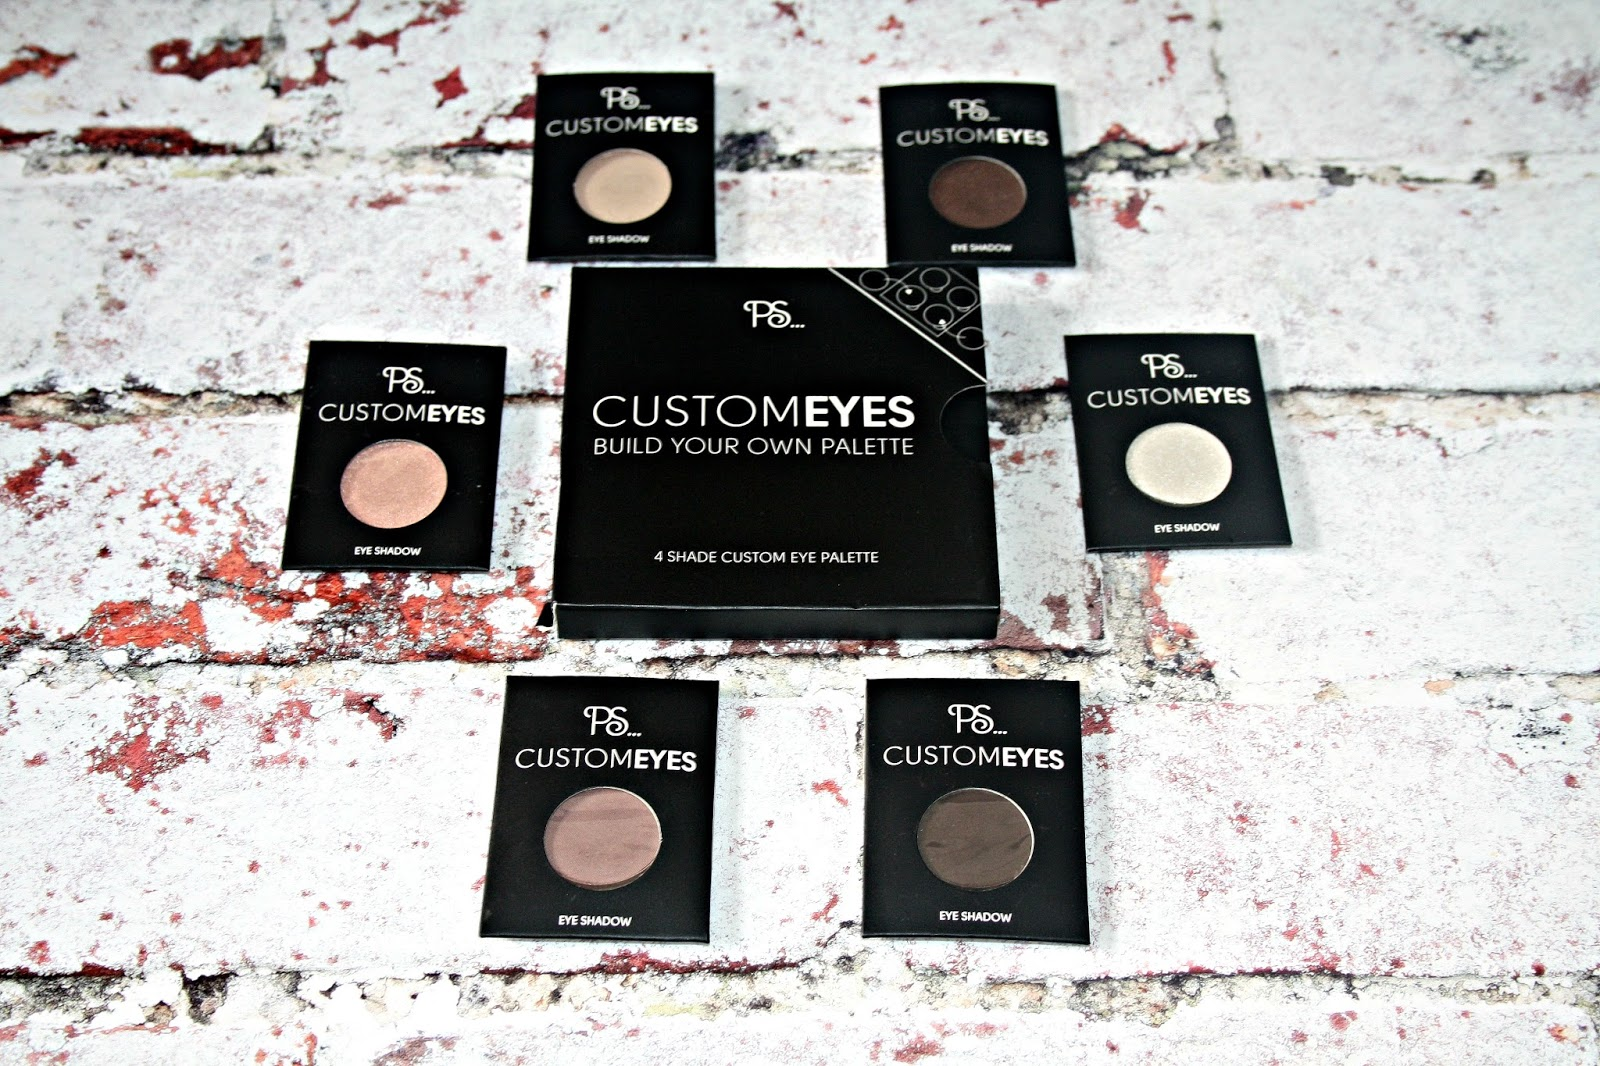 Primark PS CustomEyes - Build Your Own Palette  d05466b64